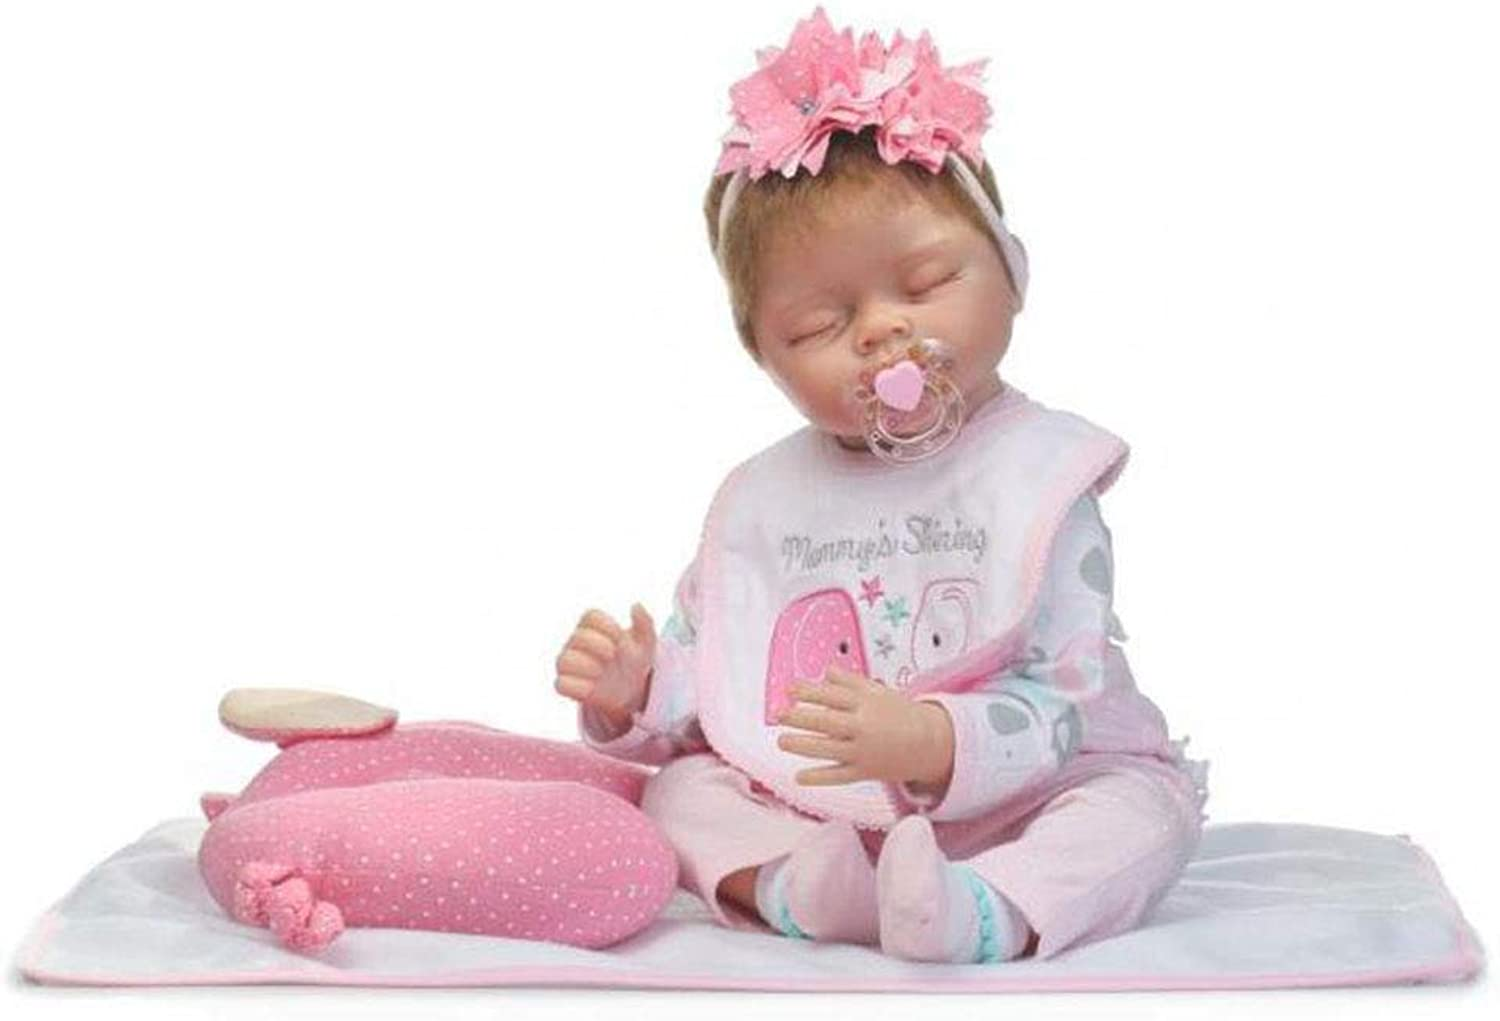 WXIAGoldNG Baby Reborn Baby Dolls 21 Lovely Real Lifelike Realistic Looking Reborn Baby Girl Doll Handmade Soft Baby Toddler Neugeborene Puppen Fake Babies Magnetic Mouth B07PLJNWV4 Kaufen Sie online  | Moderne Muster